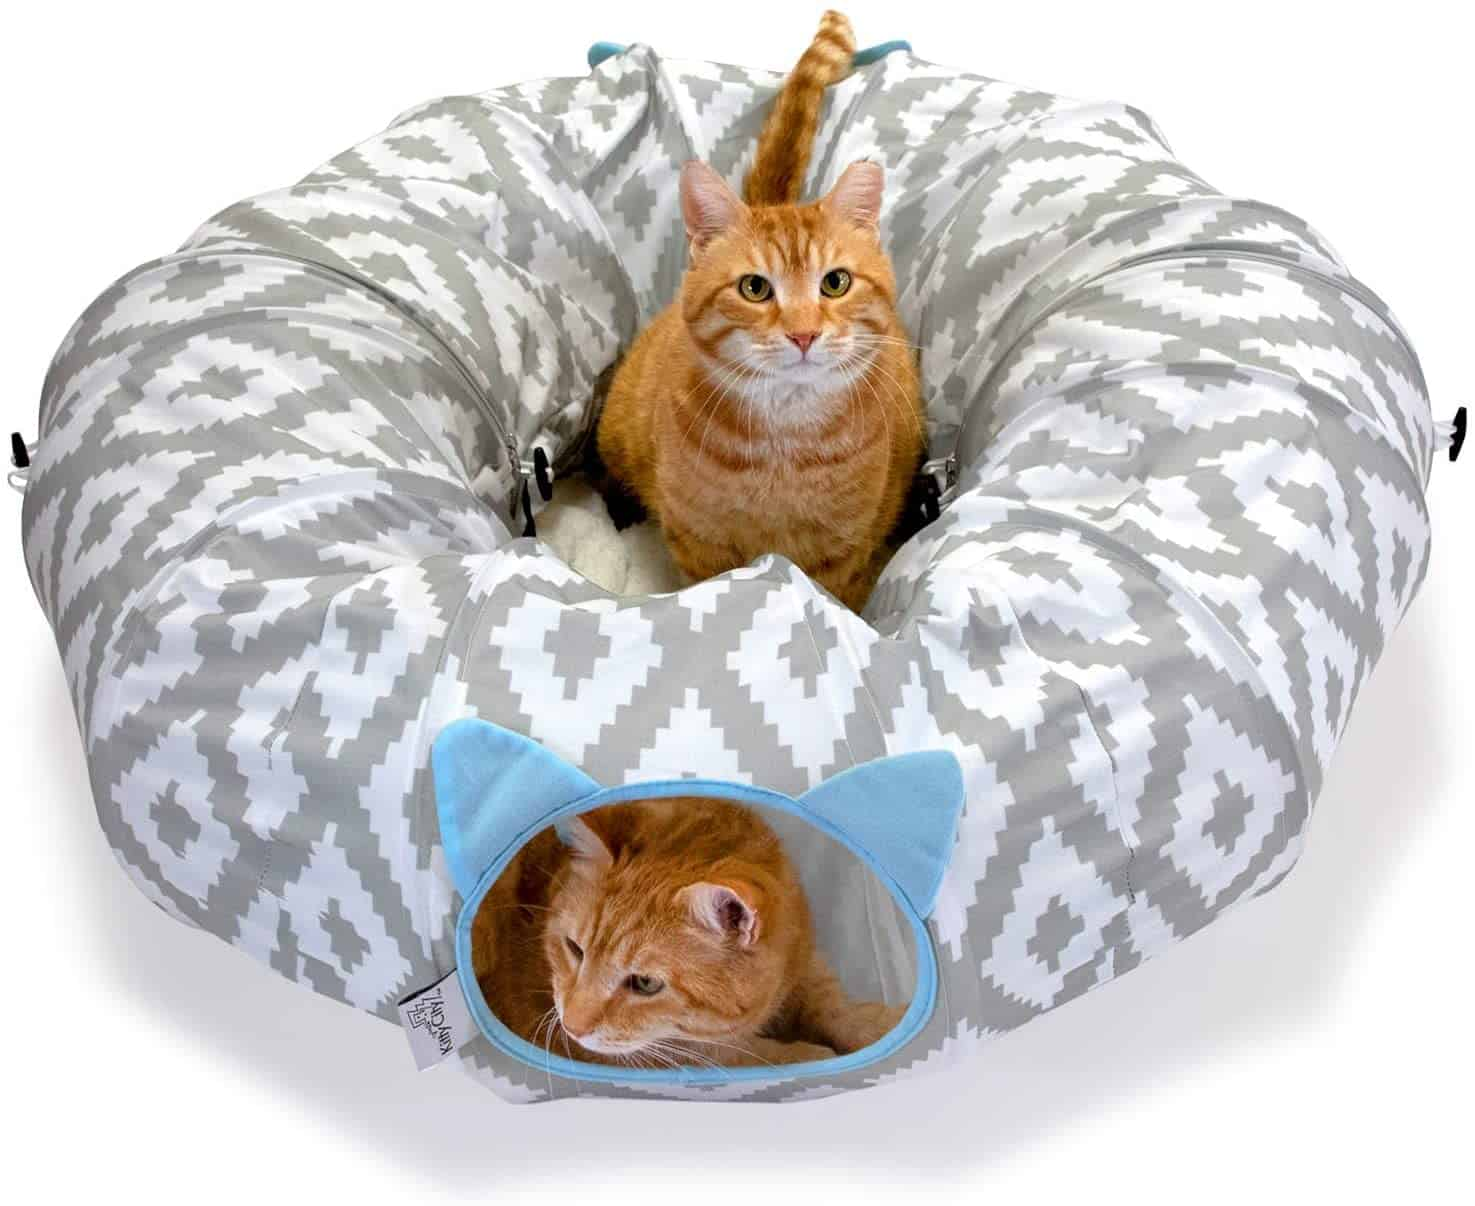 Top 13 Best Cat Toys Reviews - Cool And Engaging Toys For Indoor Cats (And Kittens!) 25